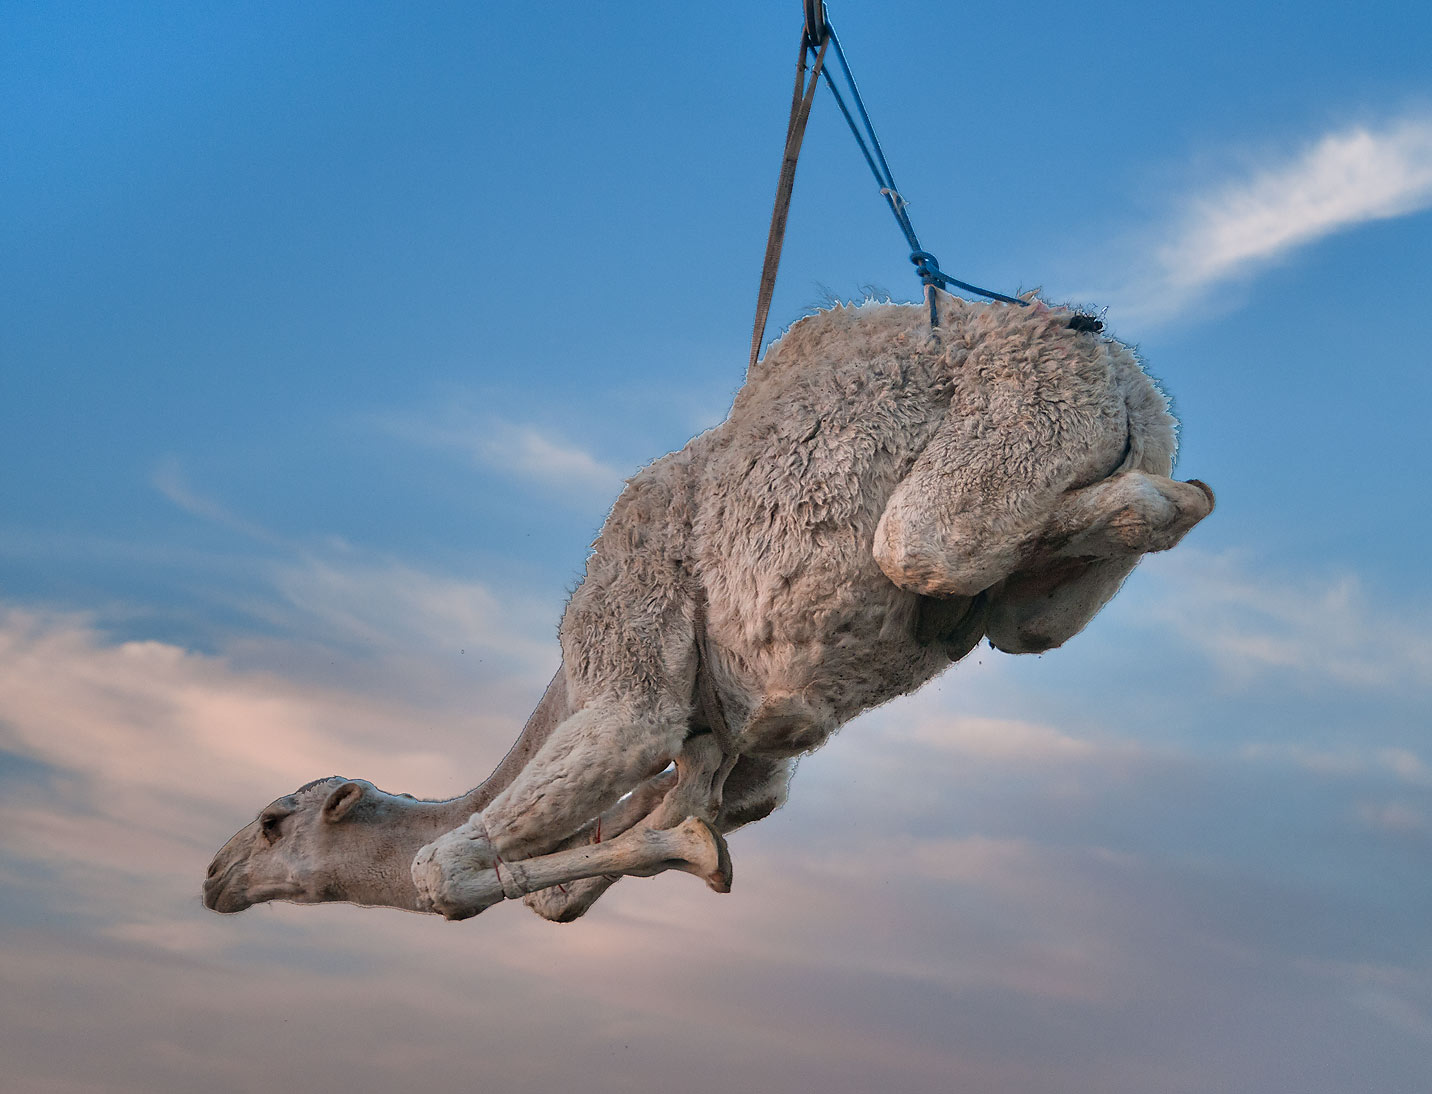 Lamb like camel lifted by crane in Camel Market (Souq). Doha, Qatar